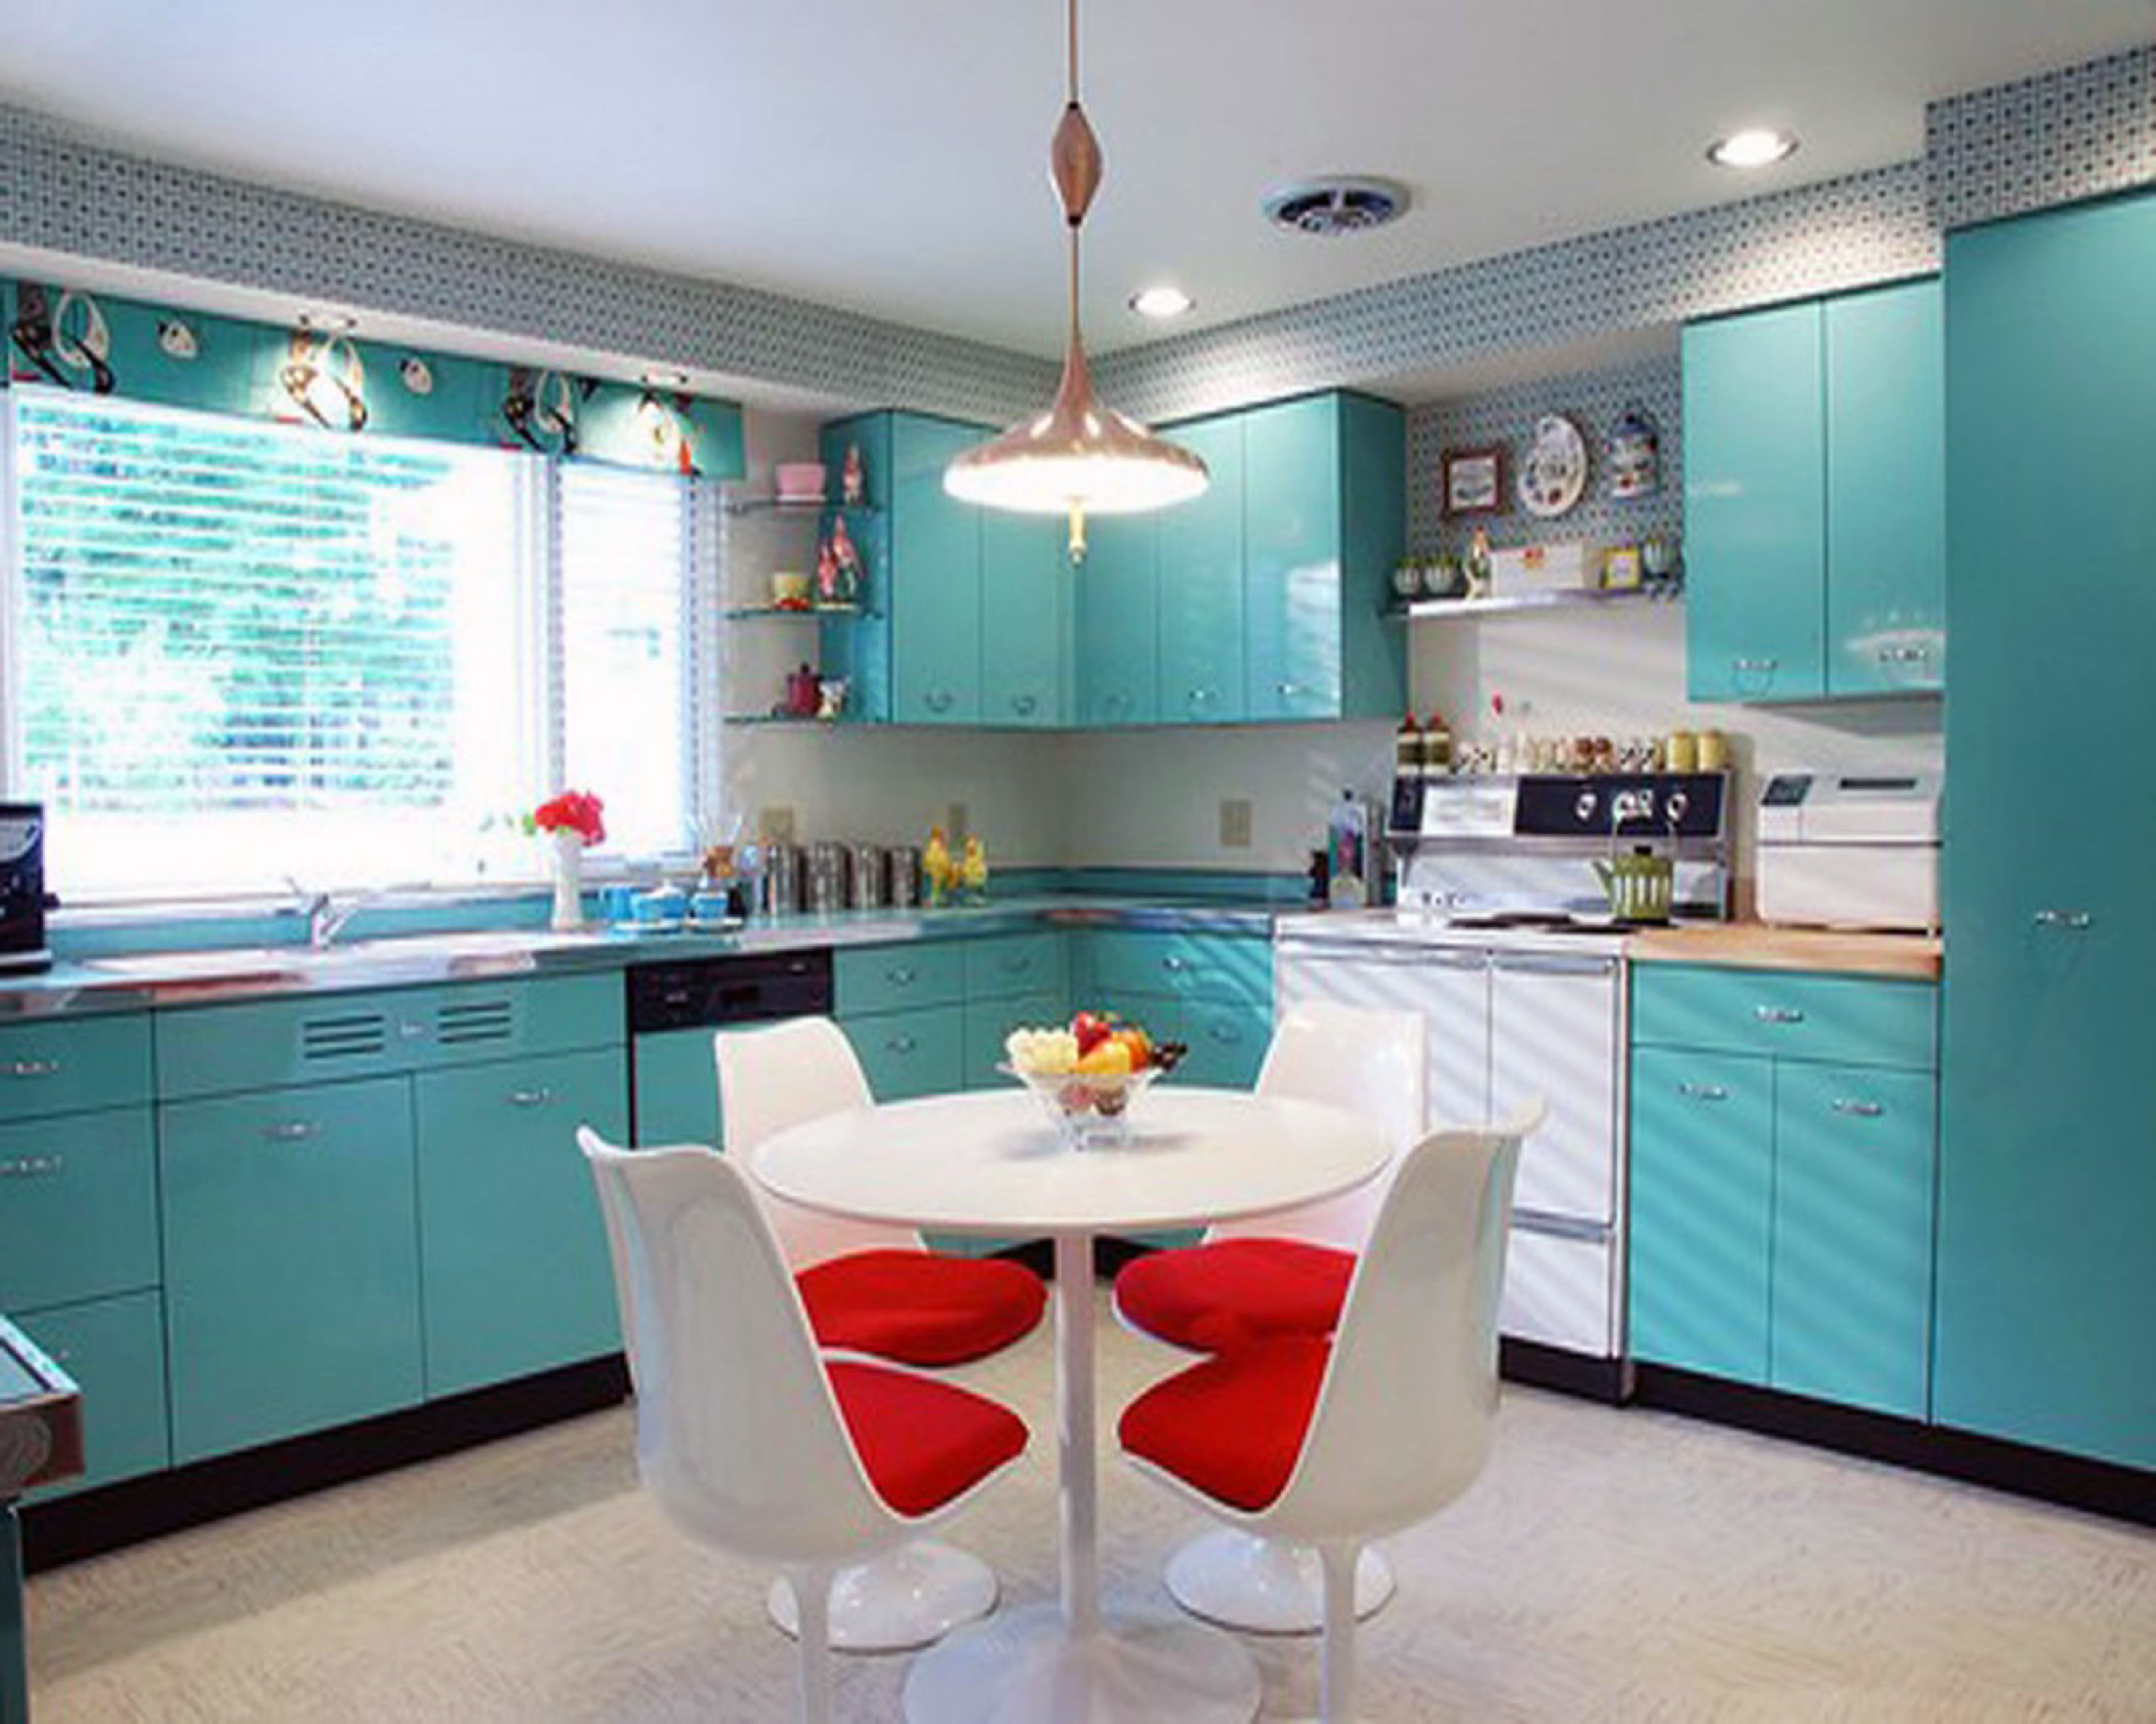 Kitchen Table Chairs Stainless Steel Sink Retro Kitchens White Granite Countertop In Op Turquoise Kitchen Decor Turquoise Kitchen Cabinets Blue Kitchen Designs